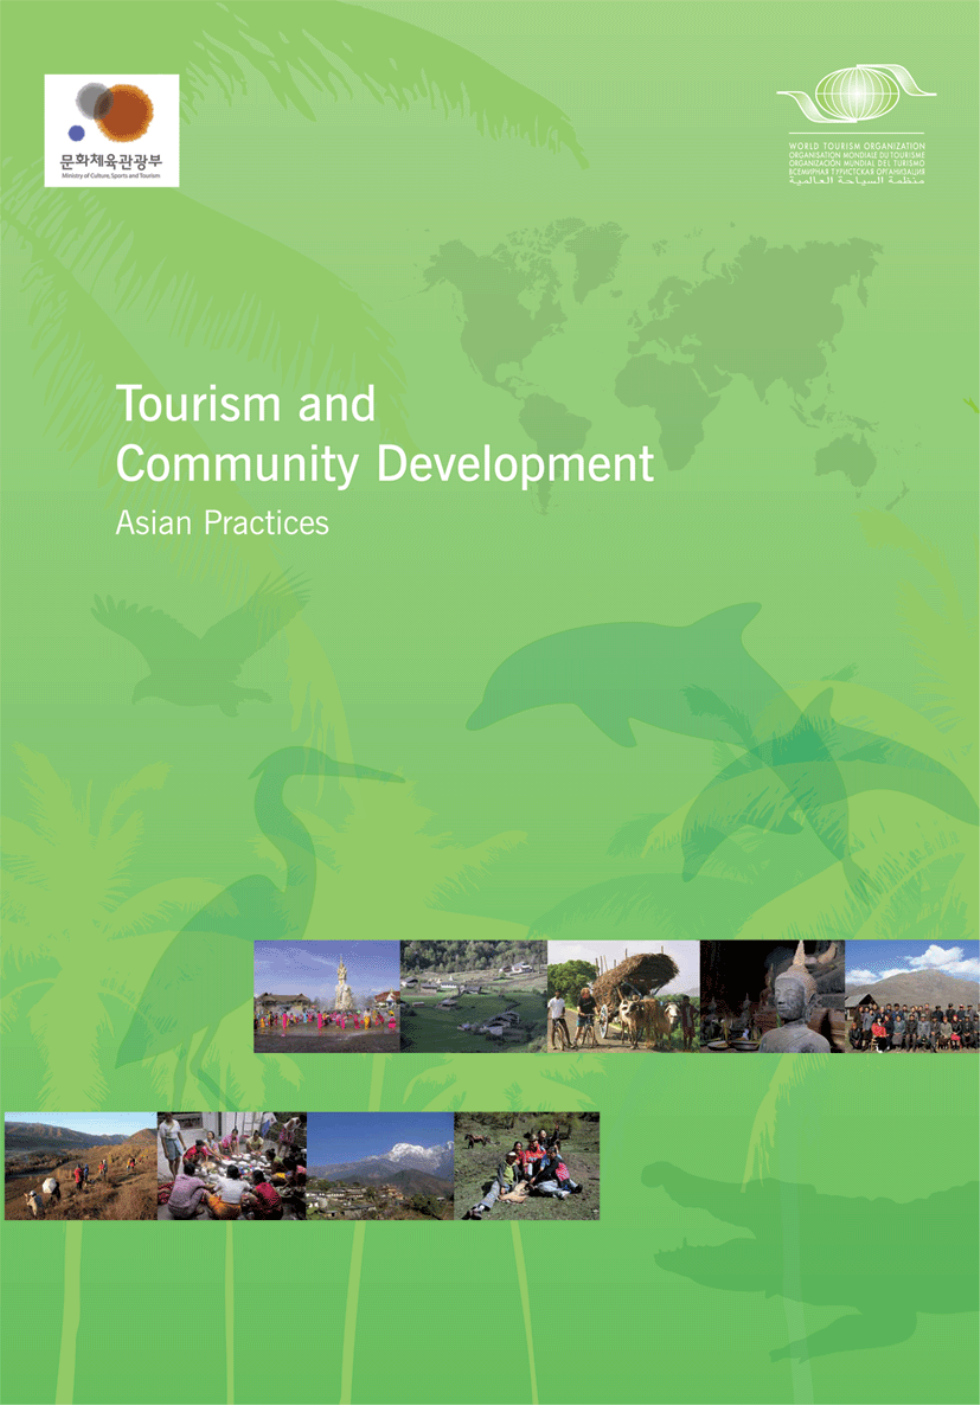 Tourism and Community Development – Asian Practices (second edition)